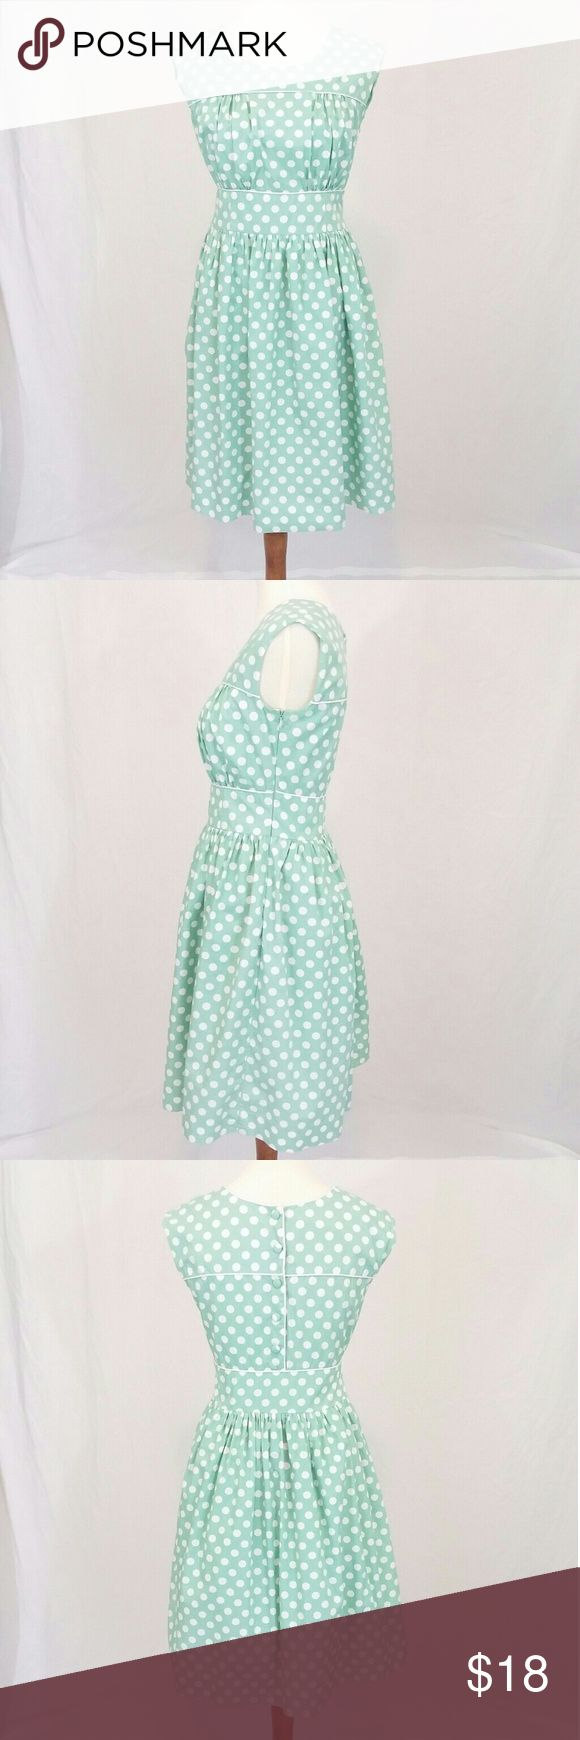 "Downeast Basics Vintage Style Polka Dot Dress Pretty as can be in mint green and polka dots! This cotton dress owes its 50's vibe to its piping along the neckline, bust, and waist as well as the button up detail in the back. Cinched in waist and gathered fabric in the bust will accentuate you in all the right ways. Measures approximately 35"" in the bust and 28"" in the waist. Length from shoulder to hem is 38"". Fully lined. Zip up on side. Please note this is a retro style dress, not actually…"